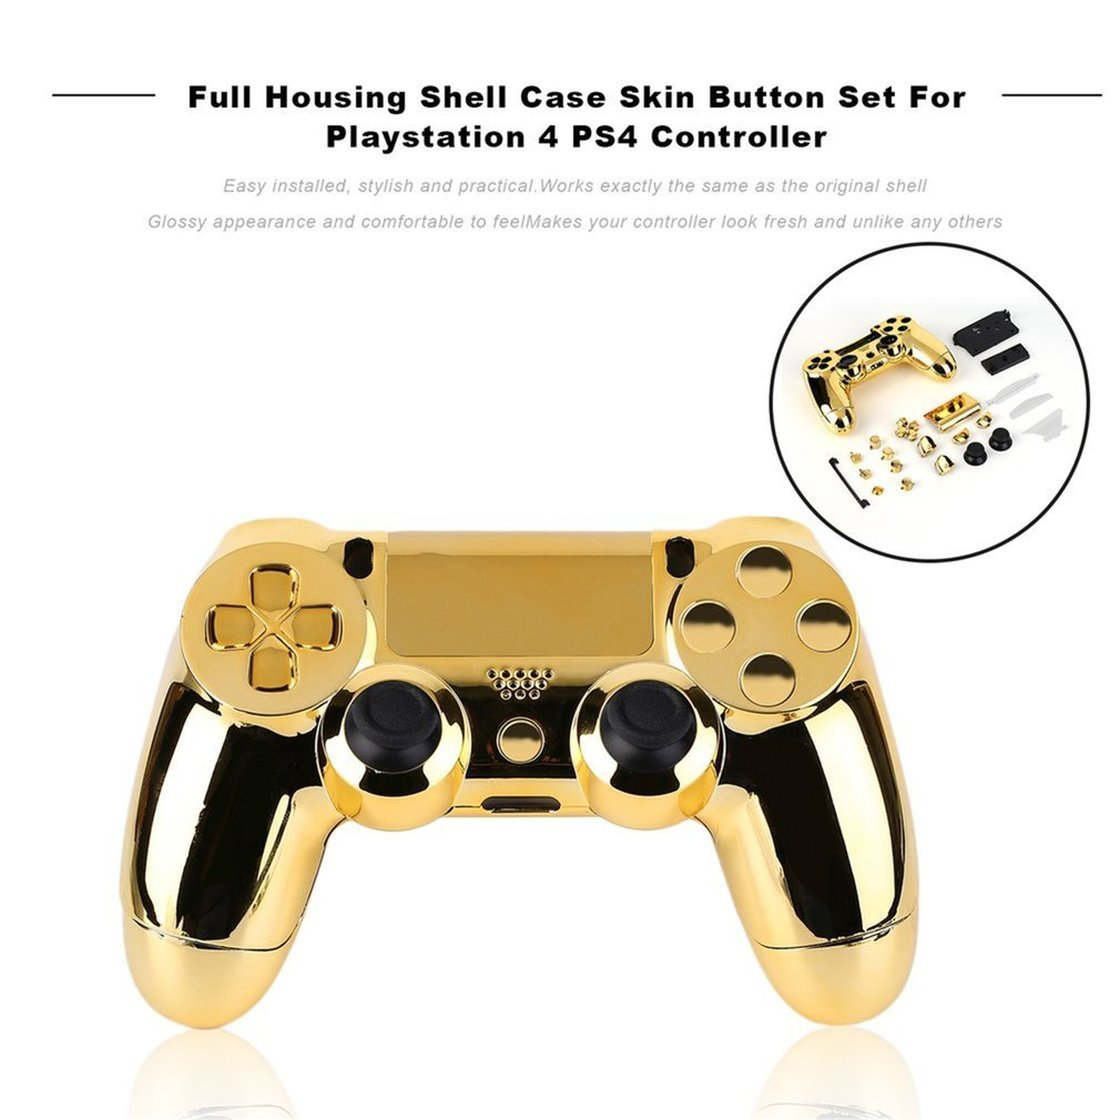 Full Housing Shell Gold Controller Housing Shell Case Skin Cover Button Set with Full Buttons Mod Kit Replacement for Playstation 4 Controller Exiao Controller Cover for PS4